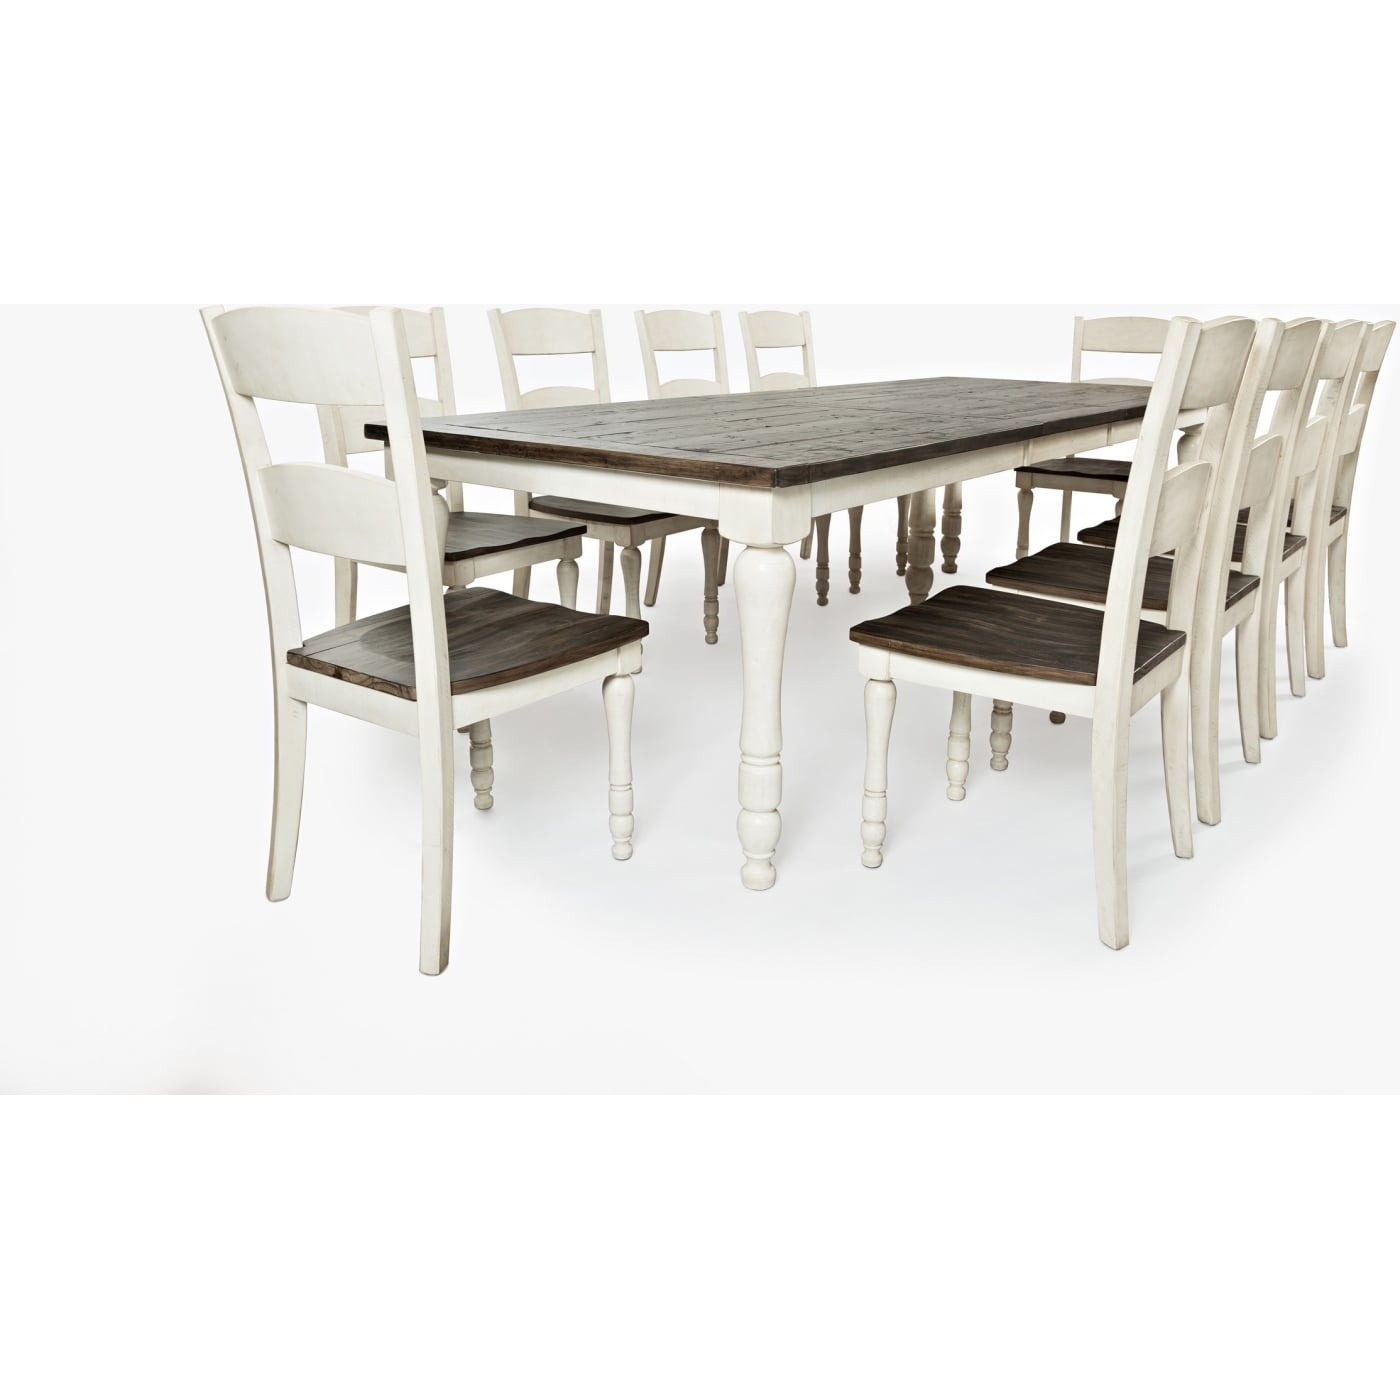 Jofran 1706 106, 1706 401KD, 1706 401KD, 1706 401KD, 1706 401KD,  1706 401KD. Madison County Vintage White Rectangular Table 11 Piece Dining  Set